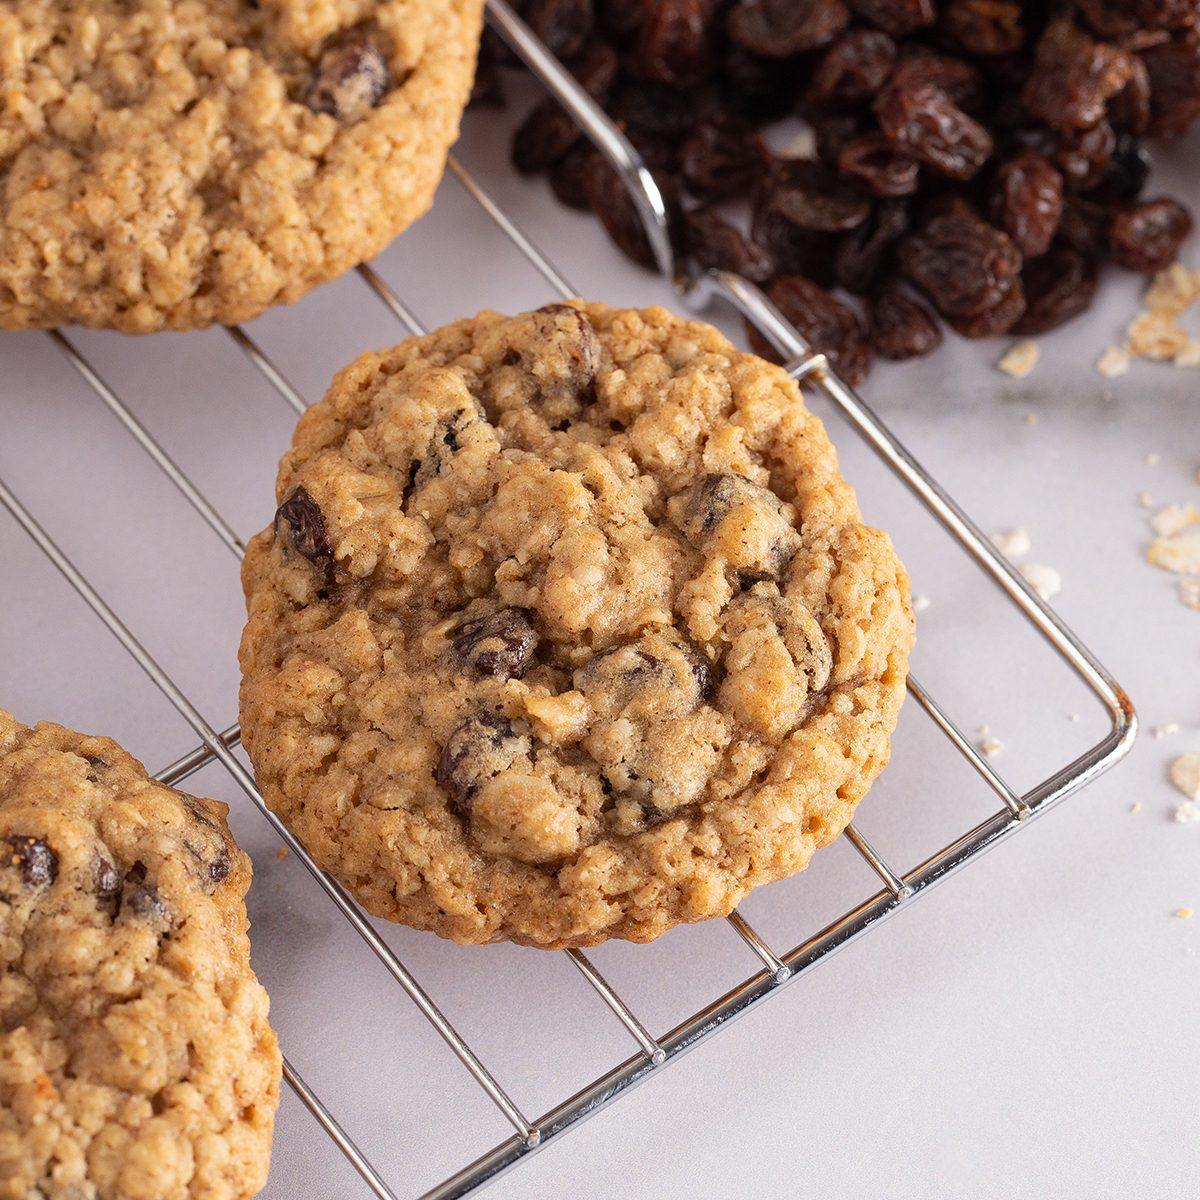 Cinnamon Raisin Oatmeal Cookies with Raw Ingredients on a Marble Counter